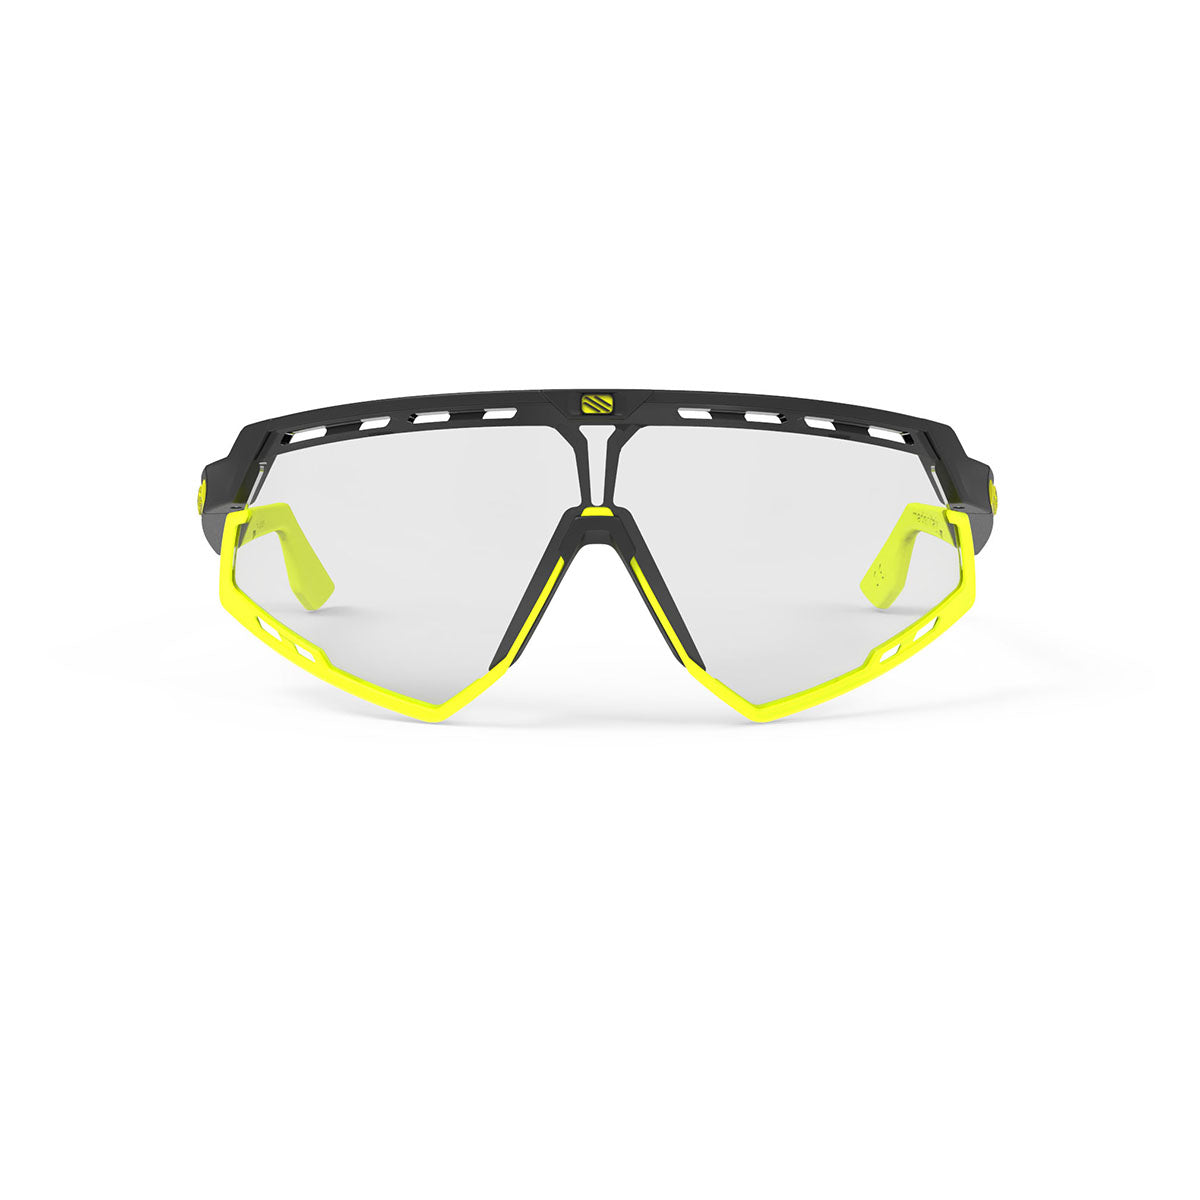 Rudy Project - Defender - frame color: Matte Black - lens color: ImpactX-2 Photochromic Clear to Laser Black - Bumper Color: Yelow Fluo - photo angle: Front View Variant Hover Image